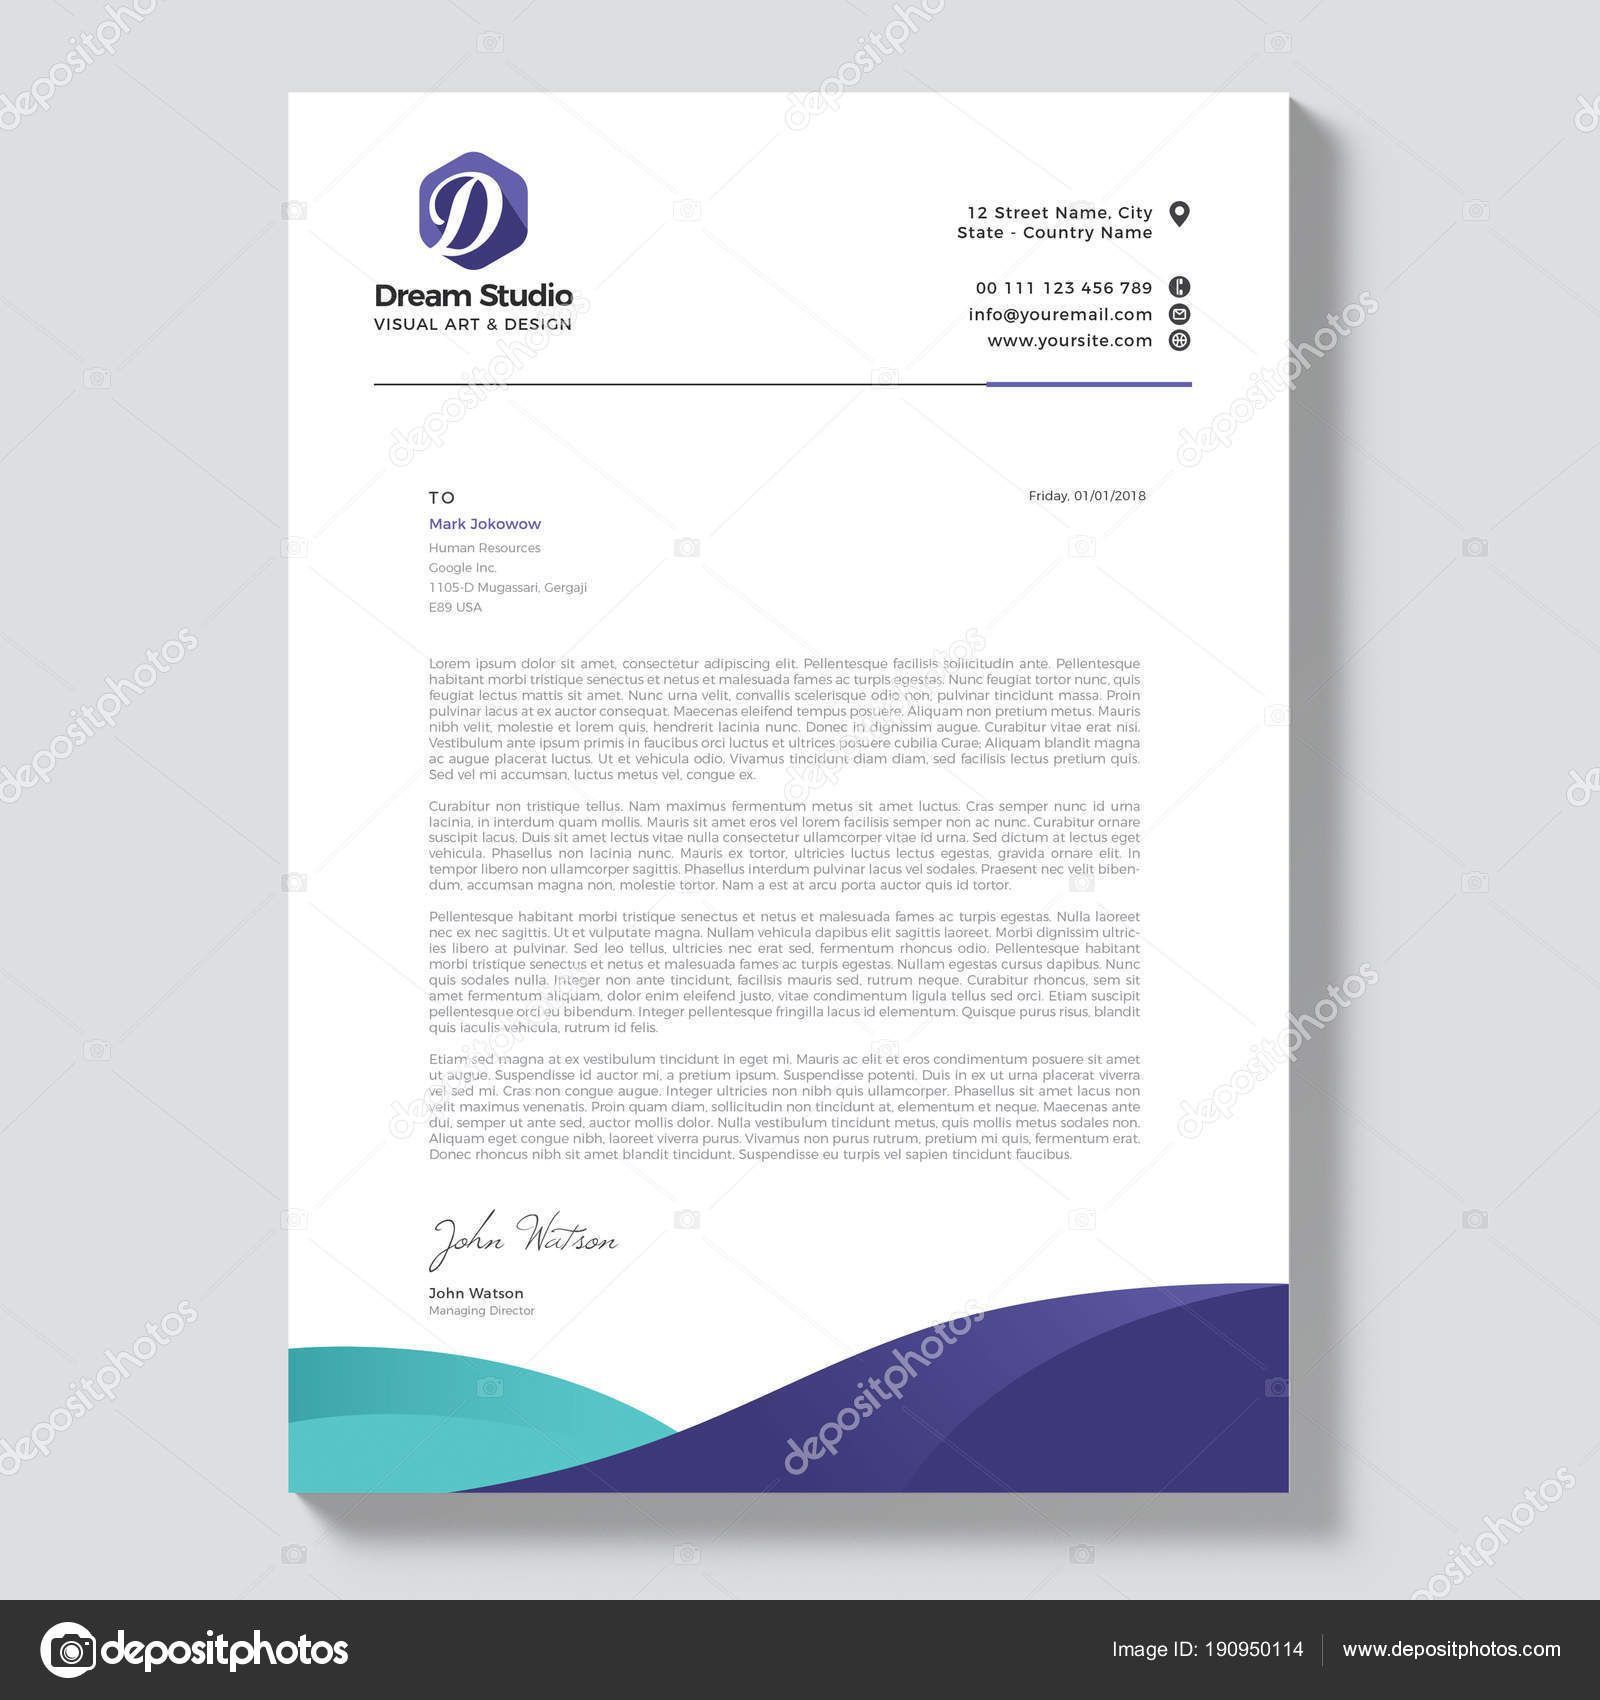 003 Shocking Letterhead Template Free Download Ai High Definition  FileFull